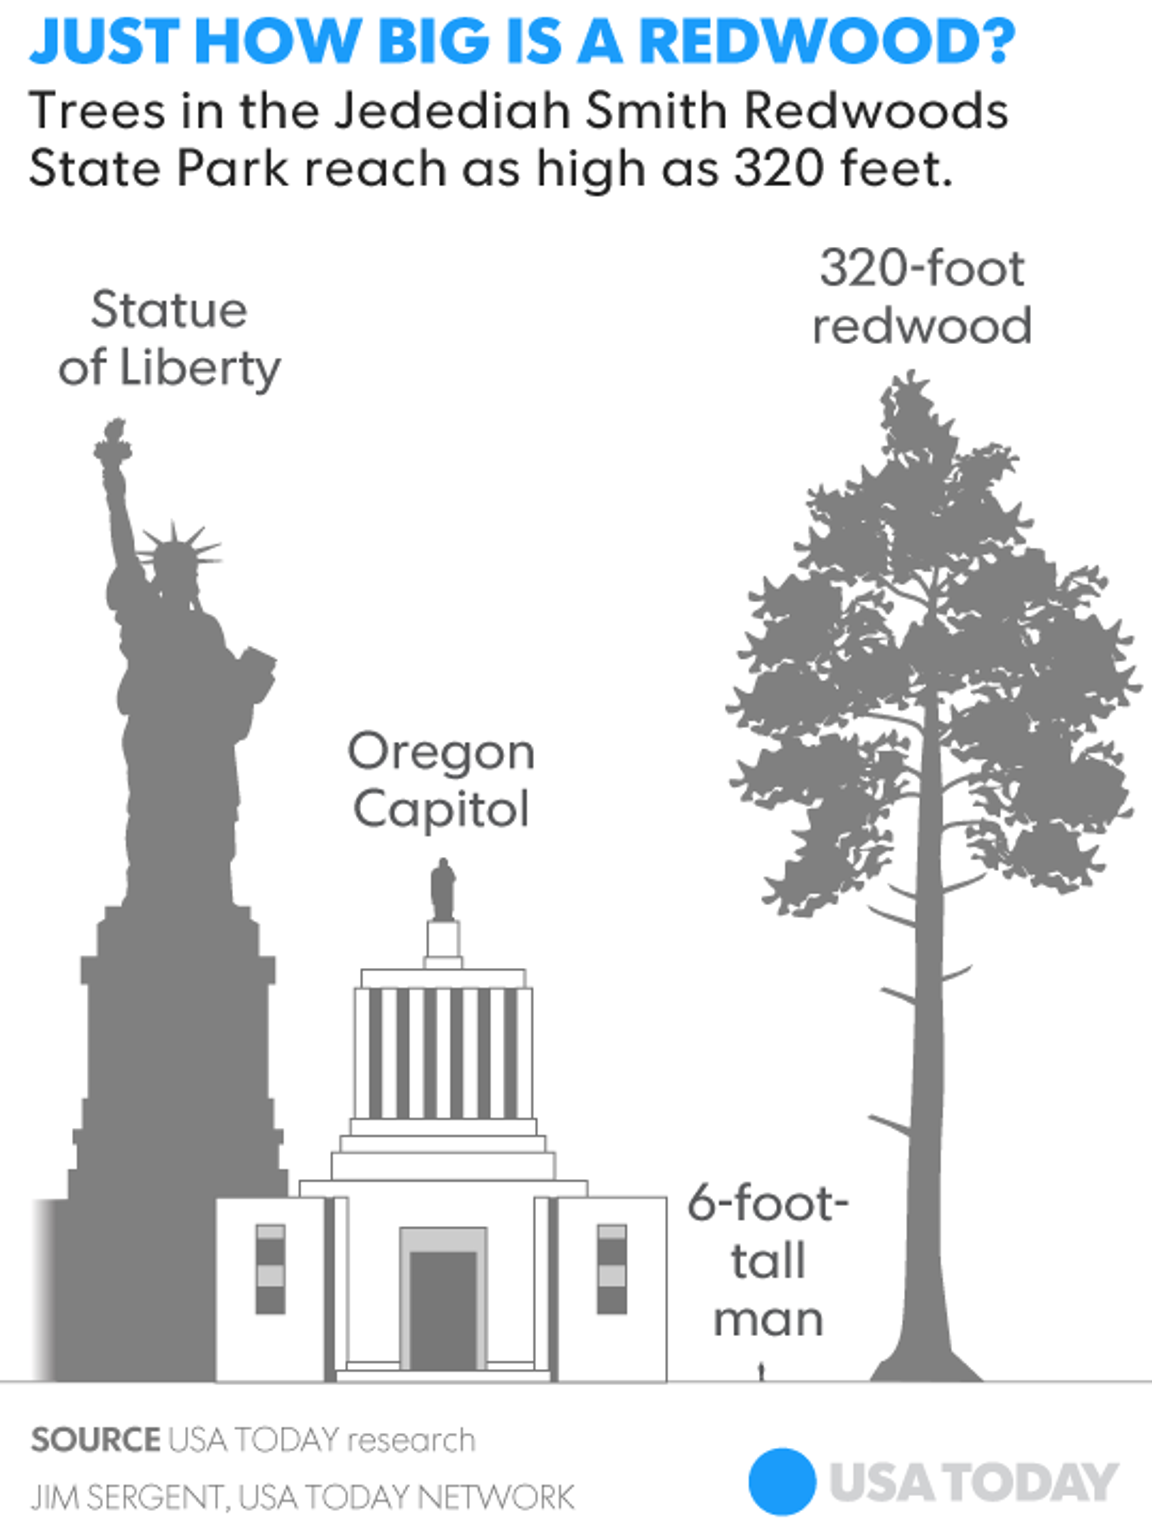 Just how big is a redwood?